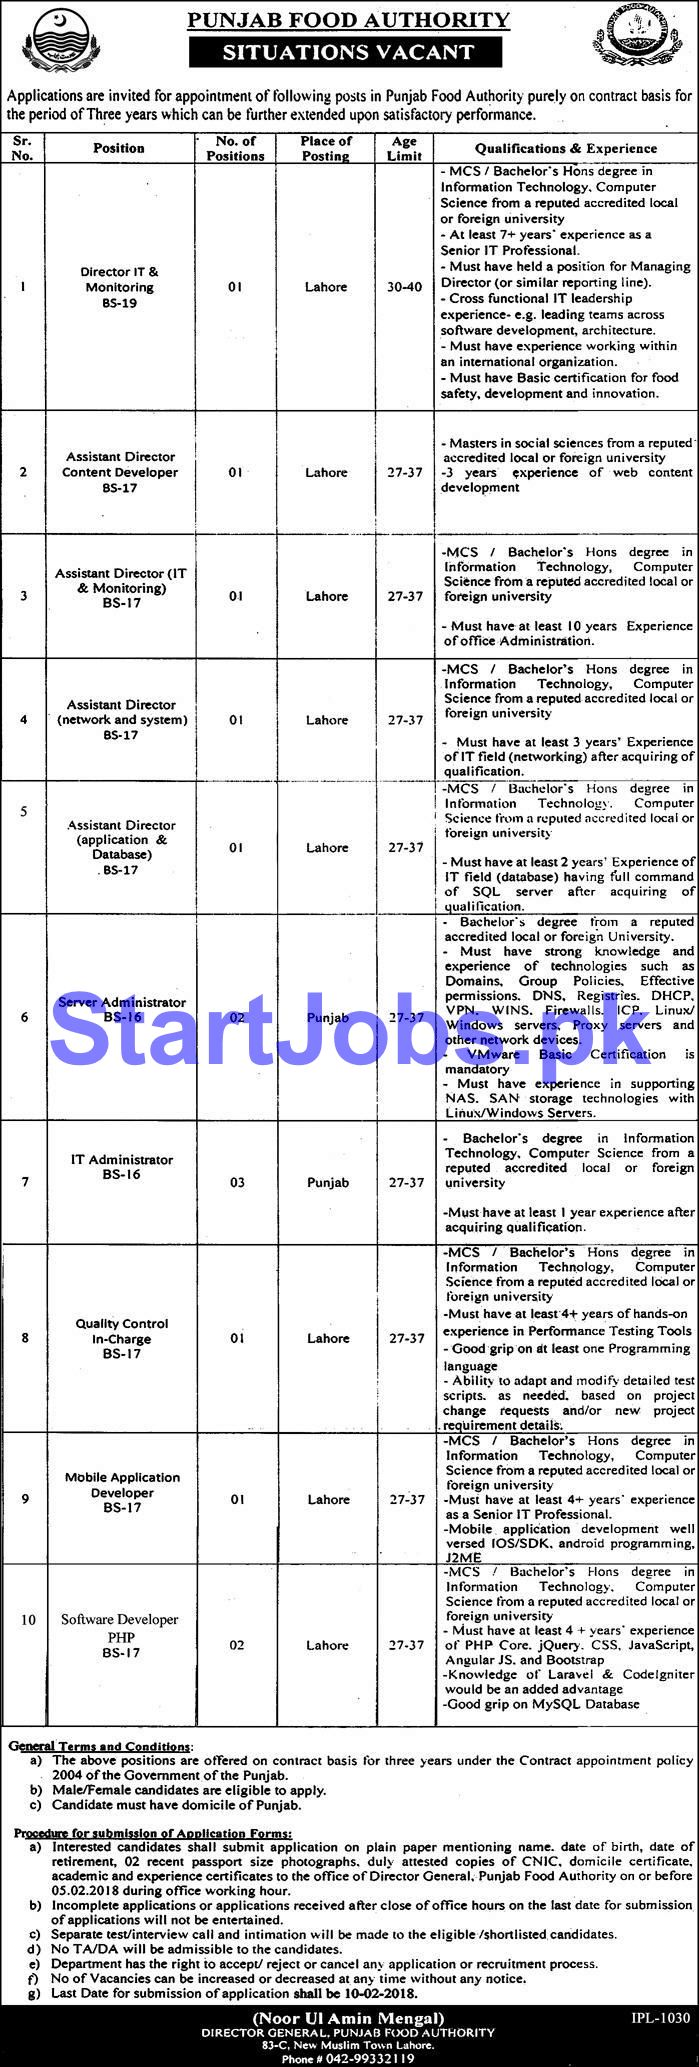 Punjab Food Authority Jobs PFA 2018 for For Director